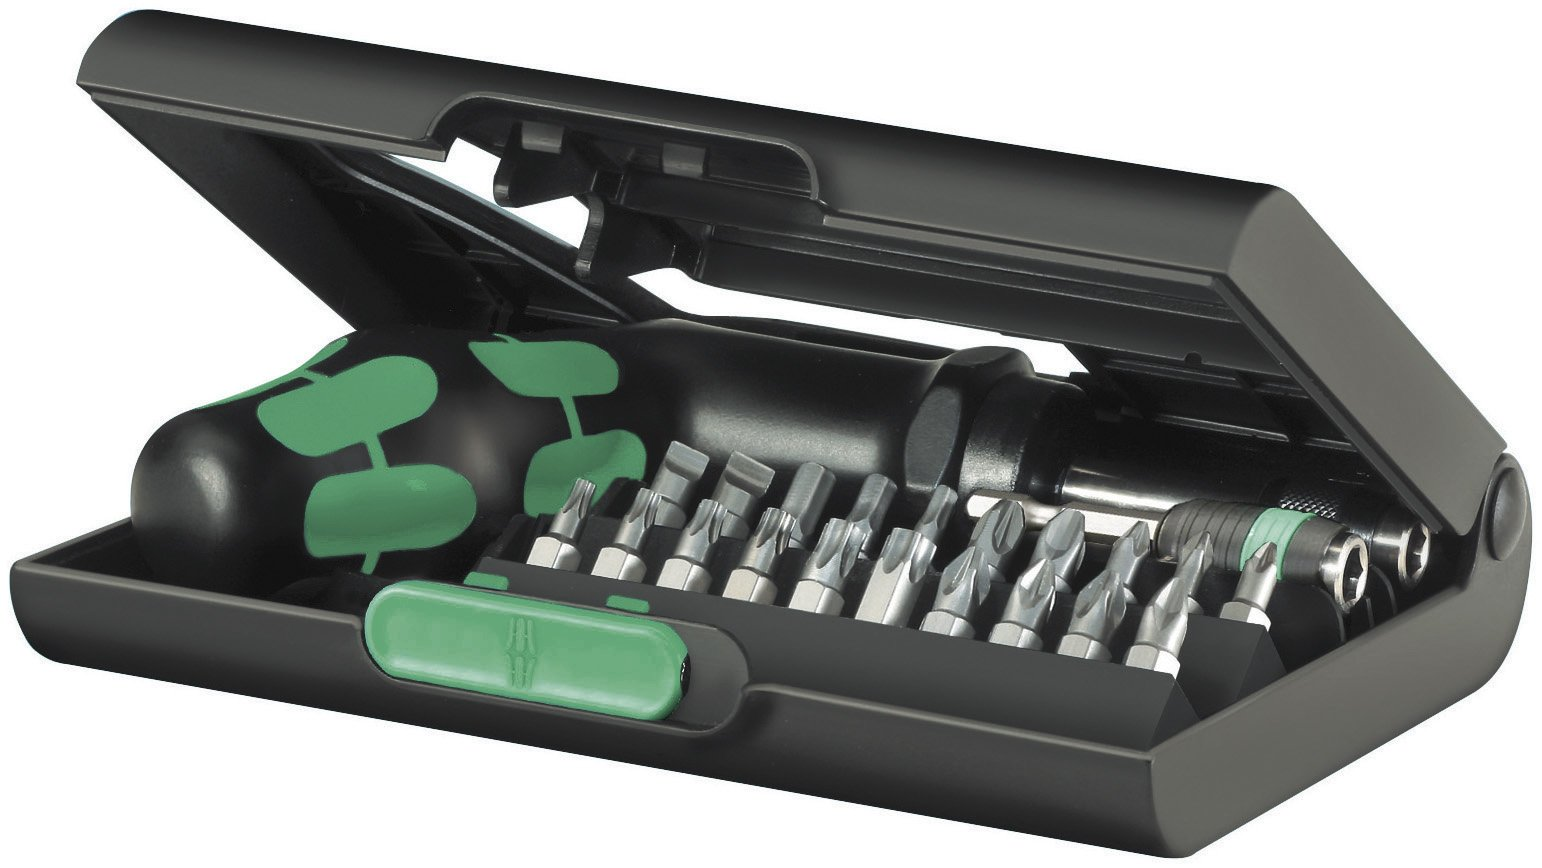 Wera KK 90 Kraftform Ratchet and Bit Set with Rapidaptor One-Hand Technology, 22-Piece